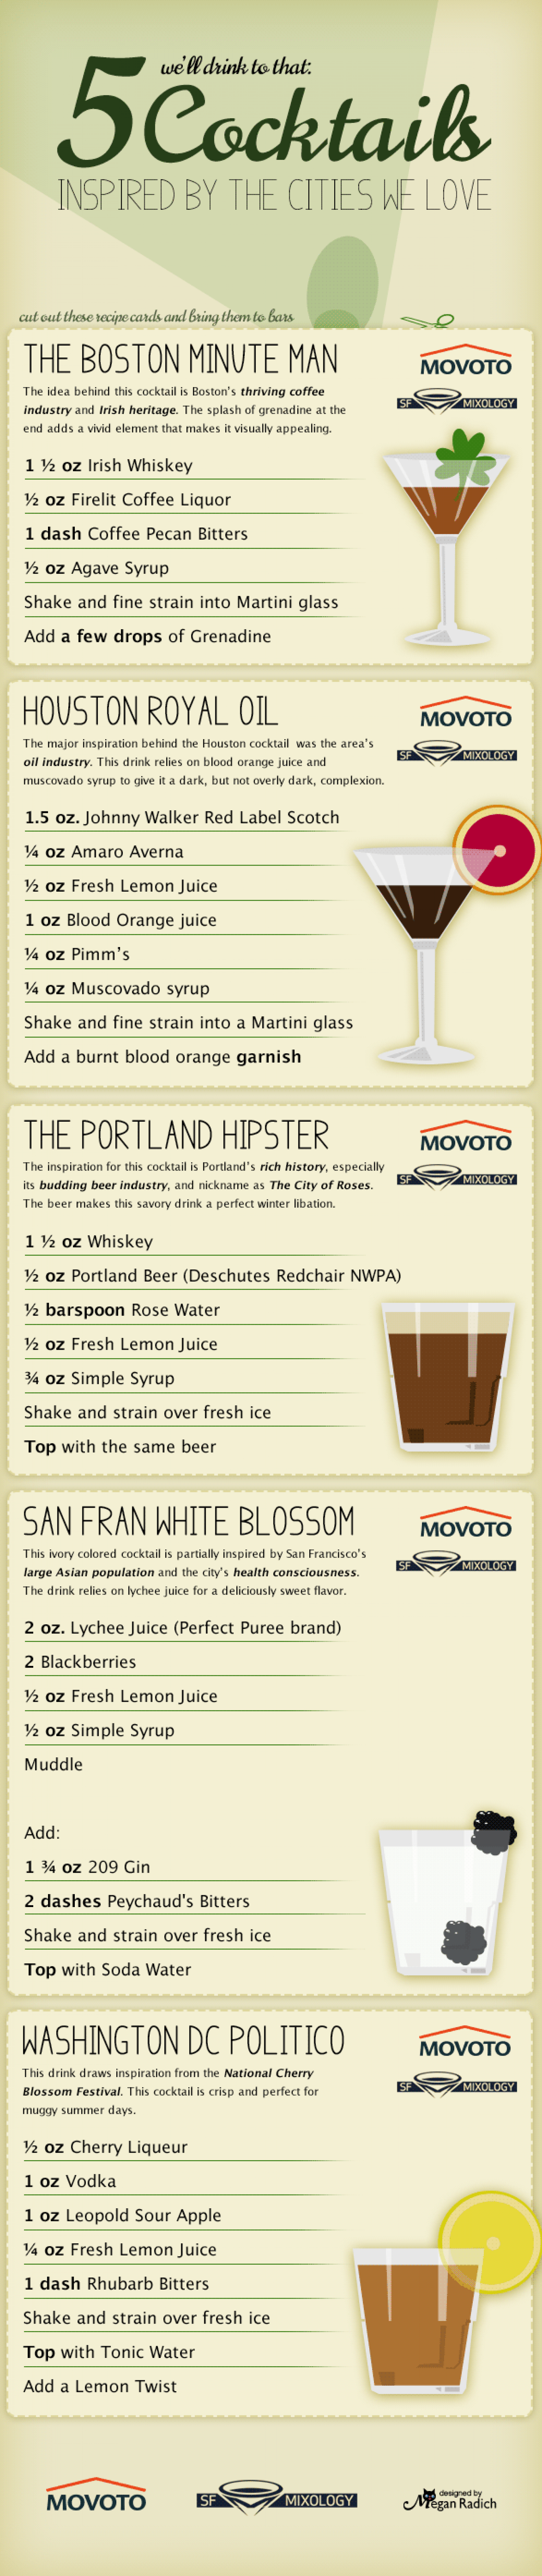 5 New Cocktails for 5 Cities That Need Them Infographic